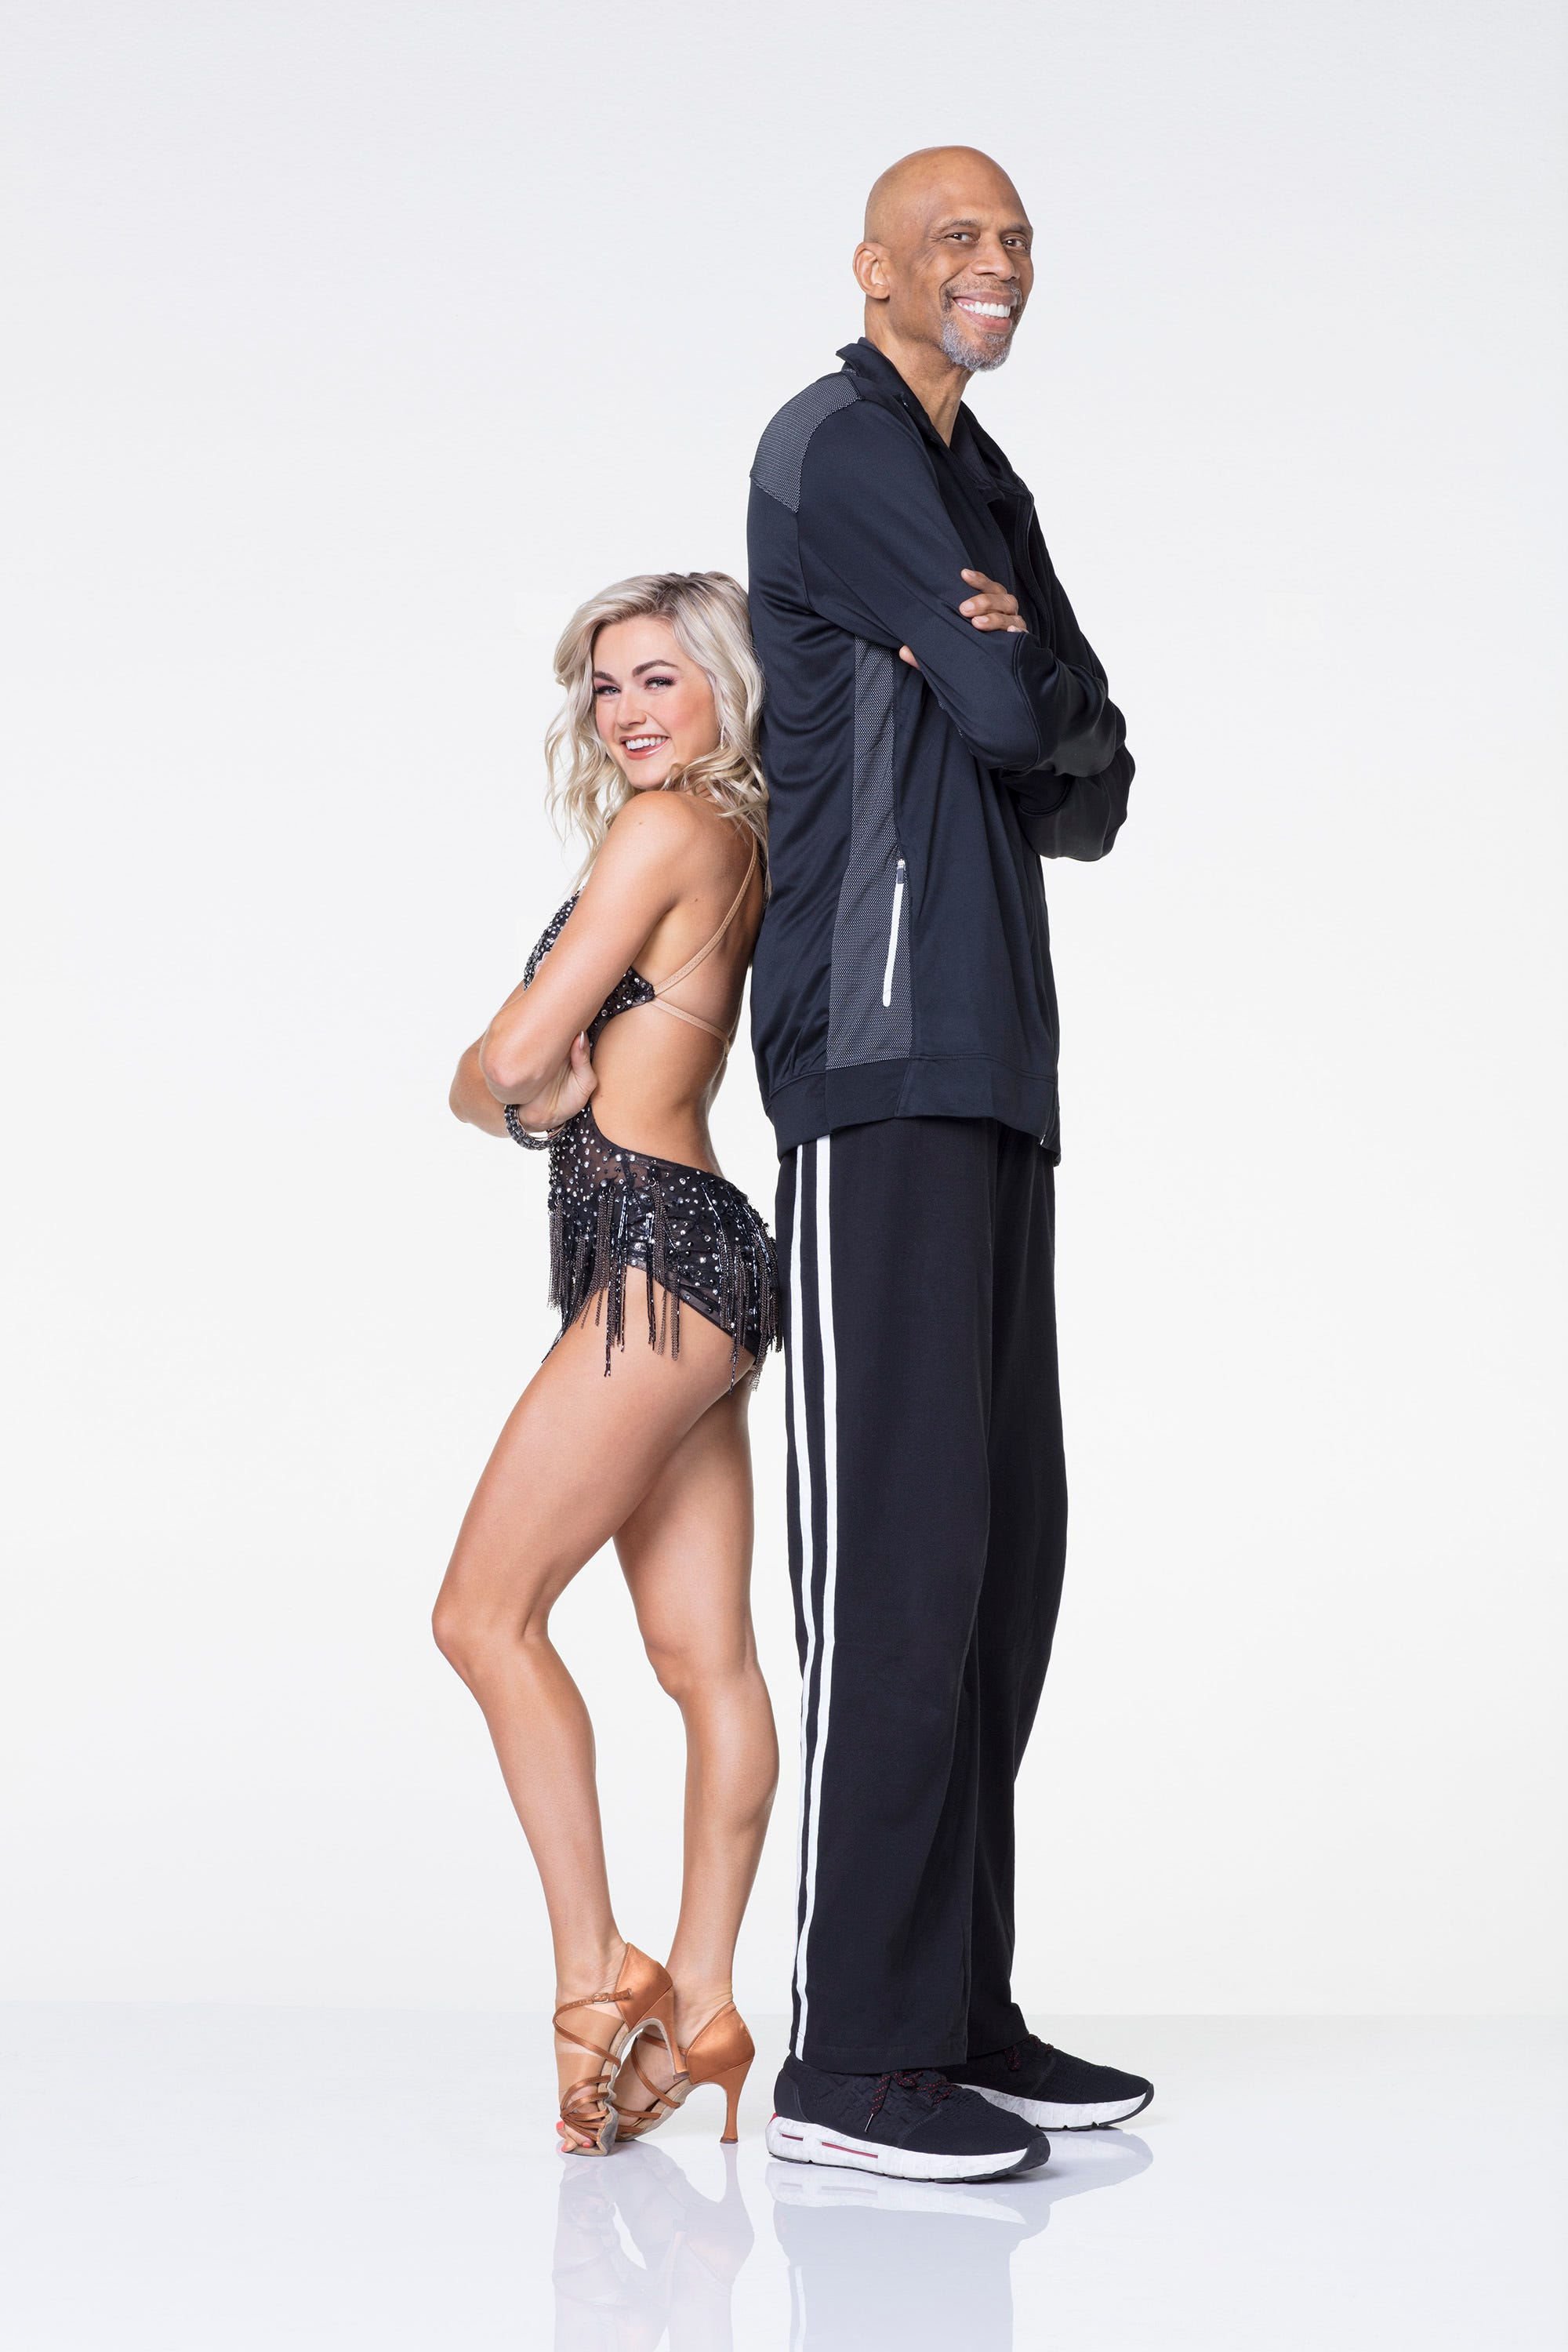 'Dancing With the Stars' athletes you'll love or hate, from Tonya Harding to Johnny Damon